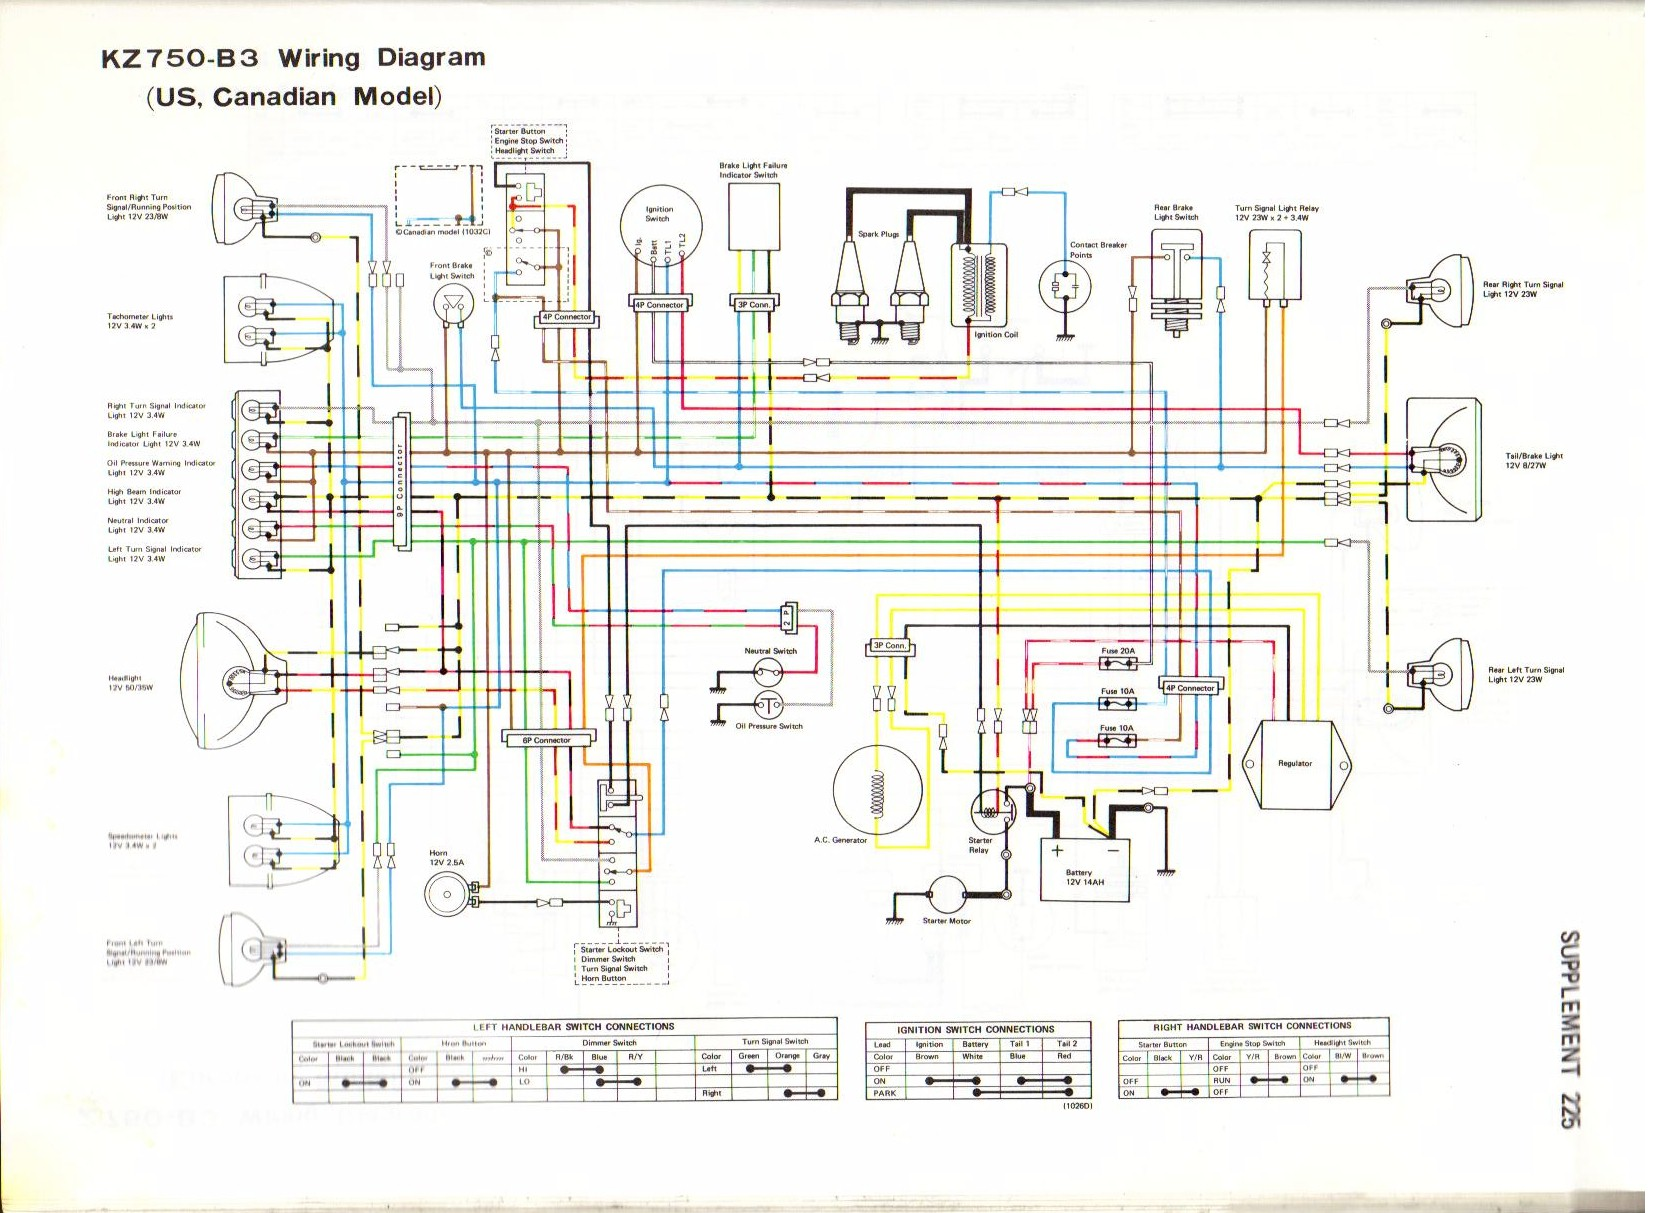 kz750b3 service manuals kz750 twin kz750 twins com Wiring Harness Diagram at n-0.co